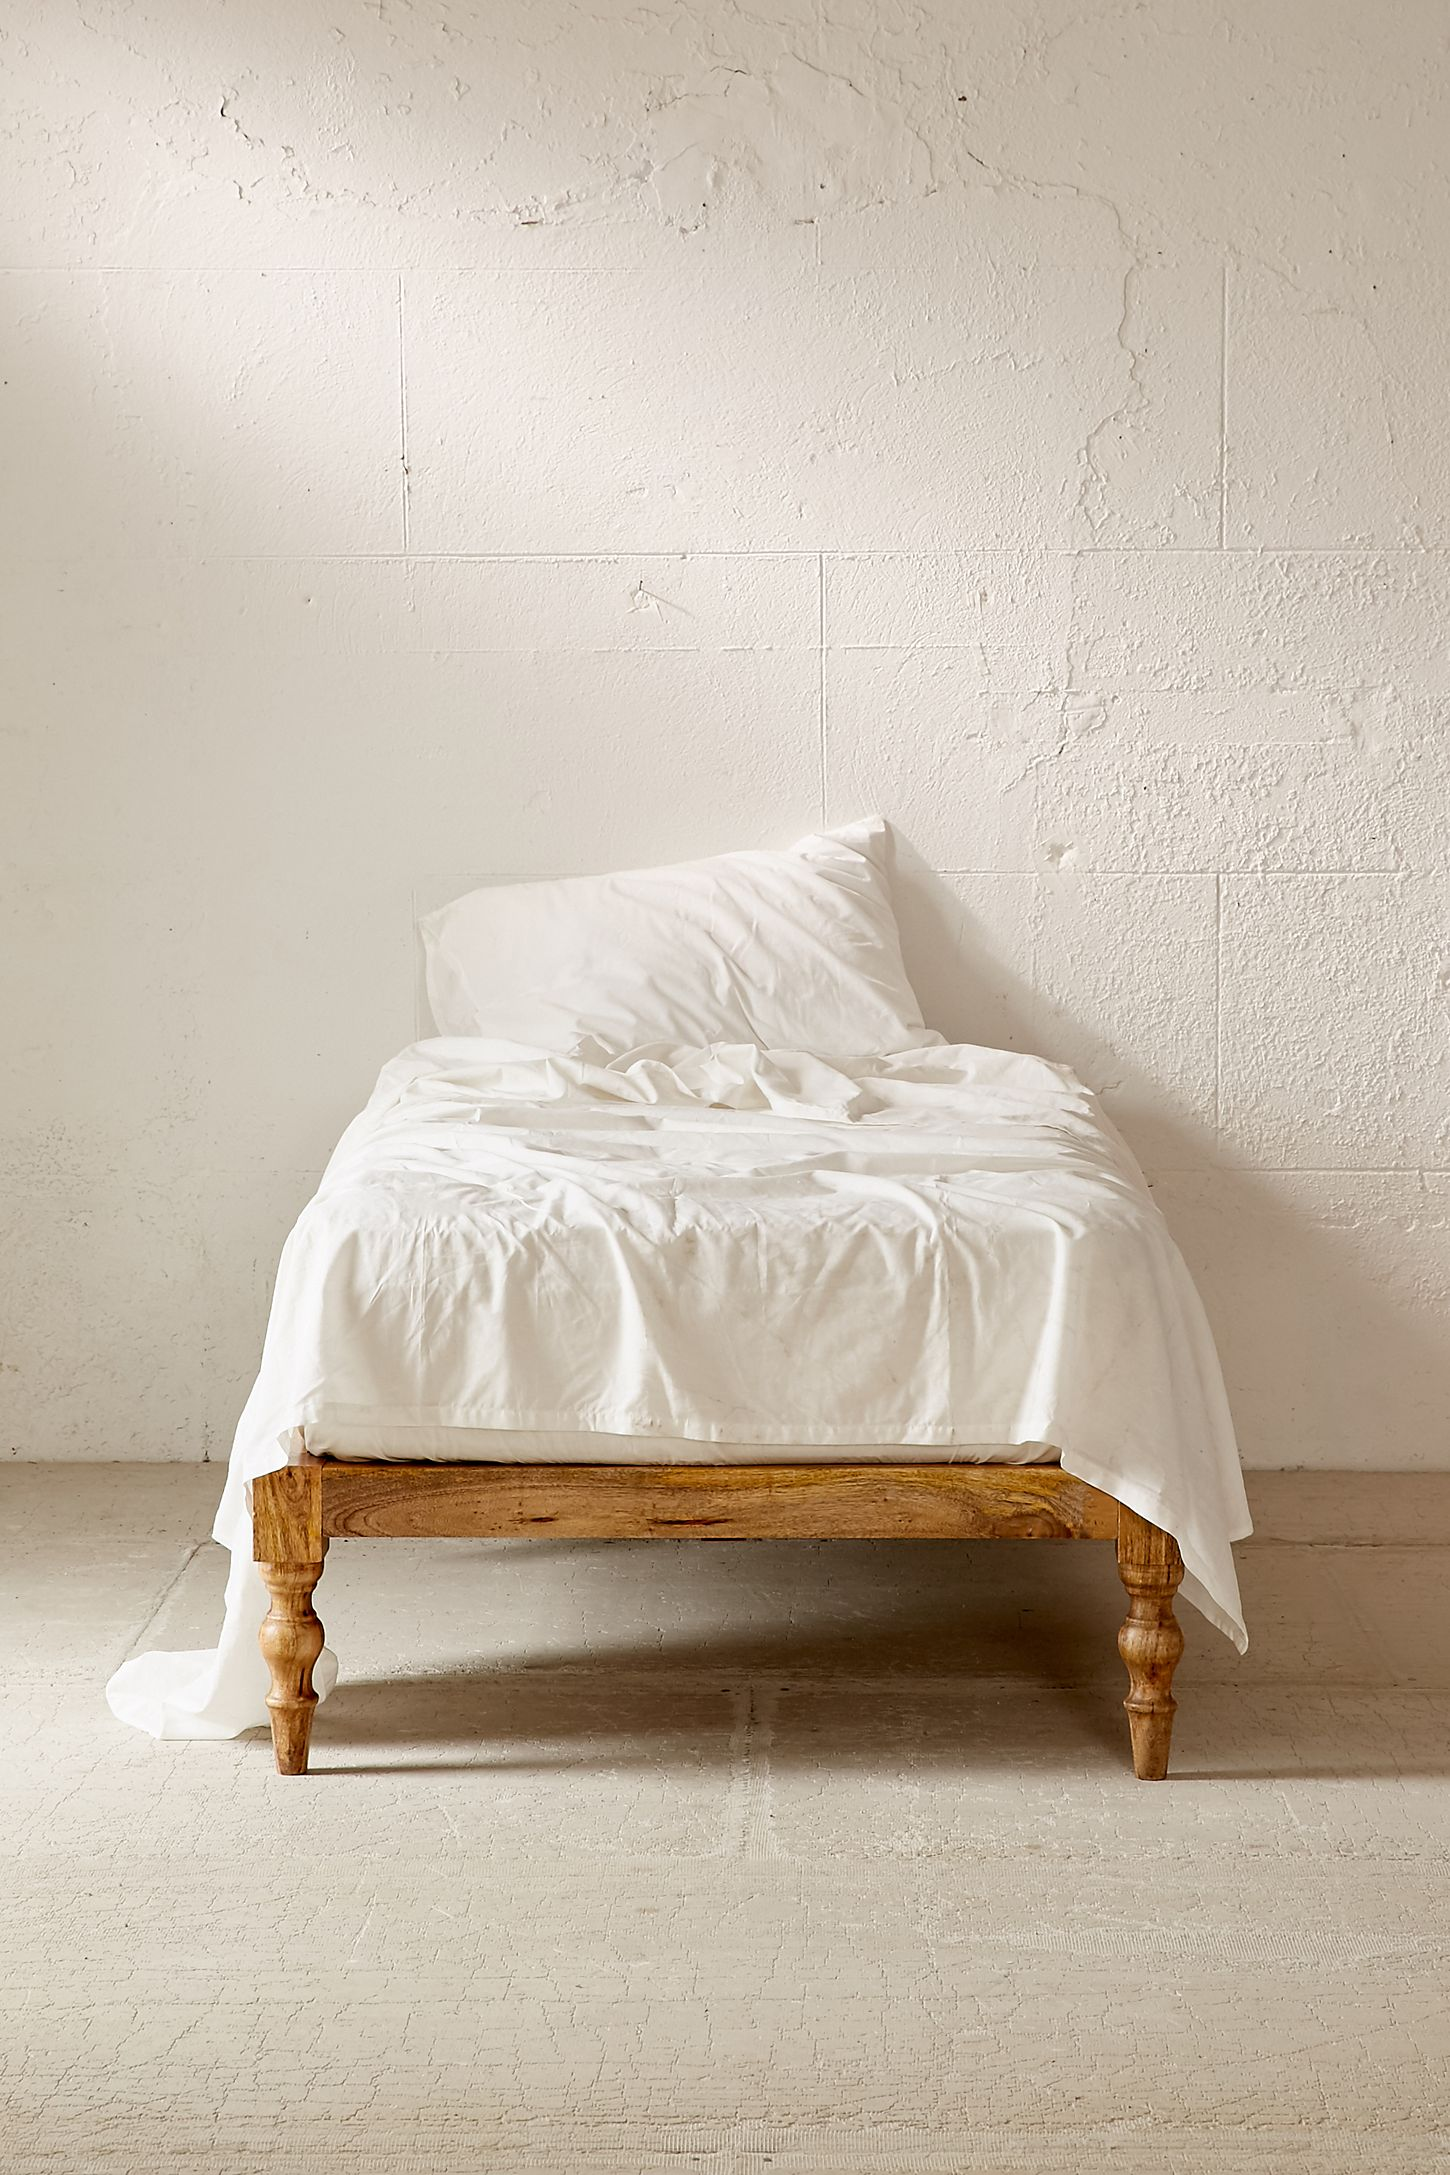 dreams give floor spot frame the restful bed your yourself can frames floating to you of cool diy made